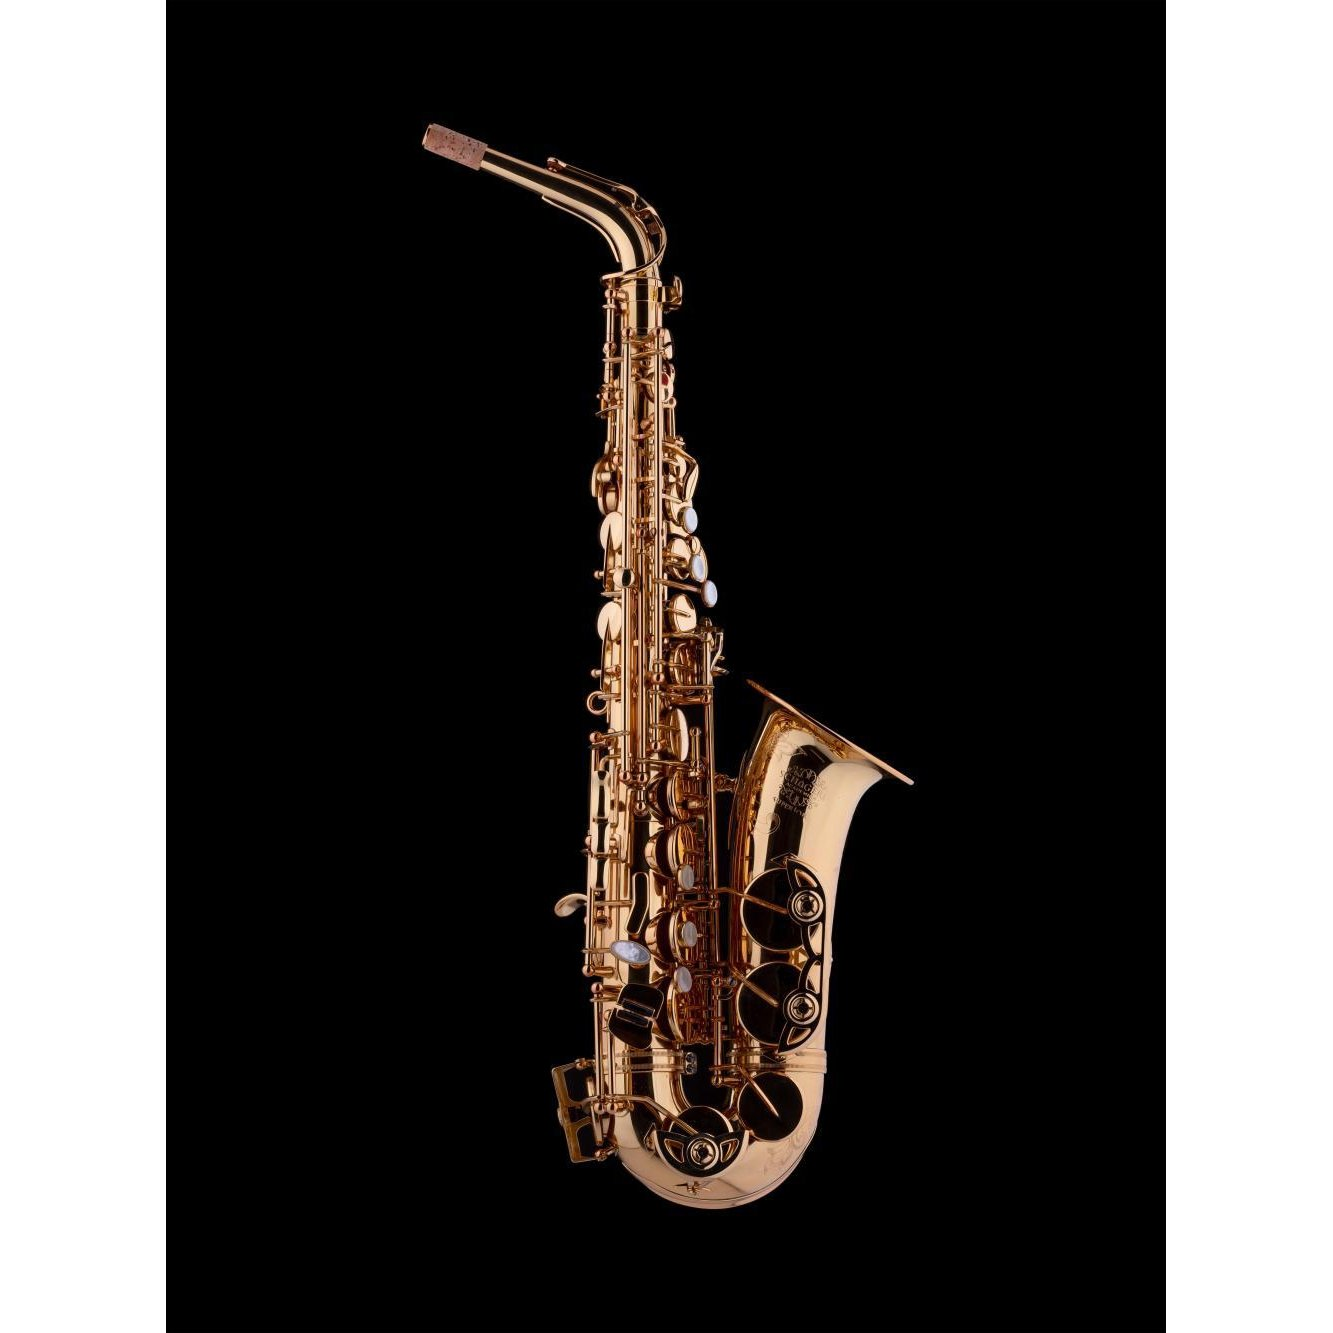 Schagerl - Superior Series - B-2 Baritone Saxophones-Saxophone-Schagerl-Lacquered-Music Elements